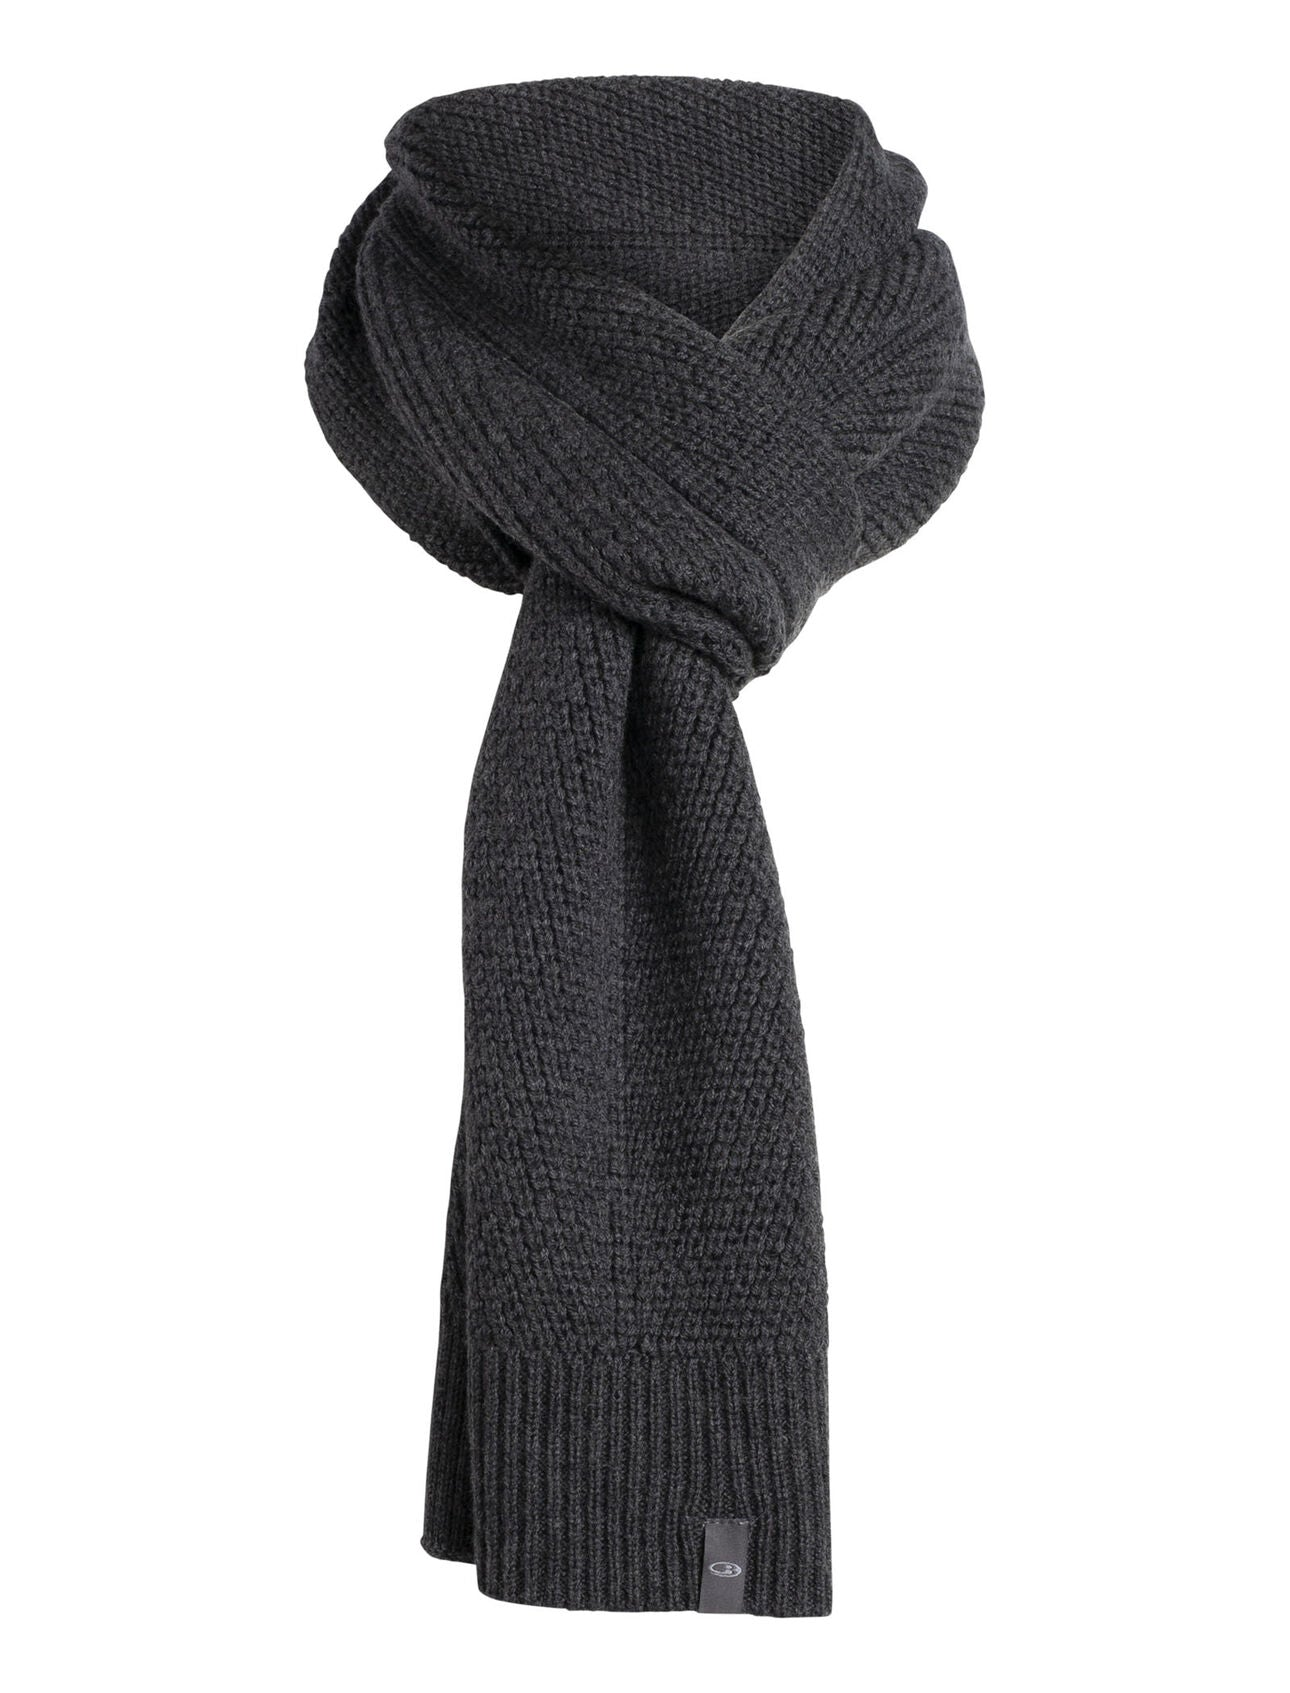 Icebreaker Waypoint Scarf (Unisex) W20 - Charcoal Heather - Find Your Feet Australia Hobart Launceston Tasmania